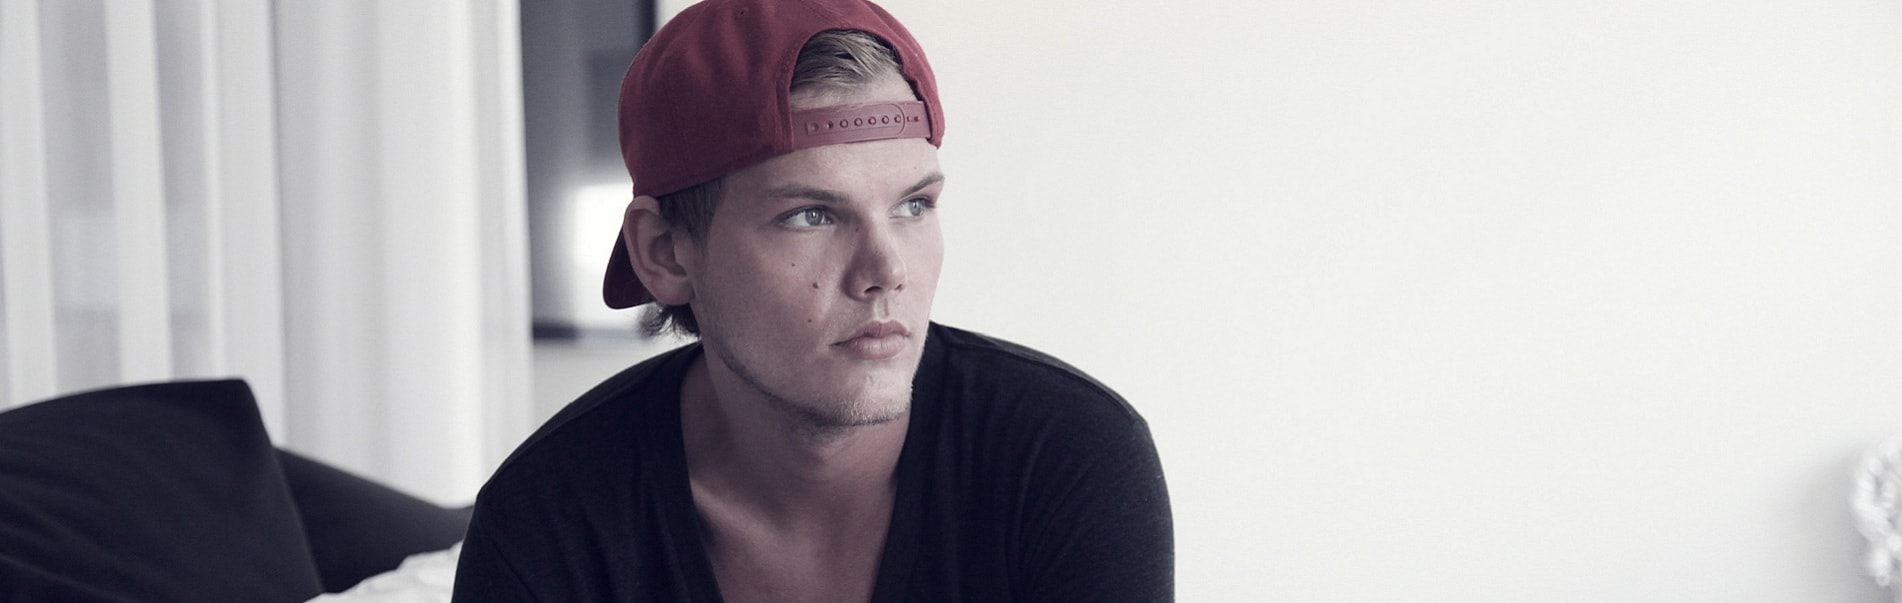 Avicii passes away: Tracing the Swedish DJ and music producer's irreplaceable presence in global EDM